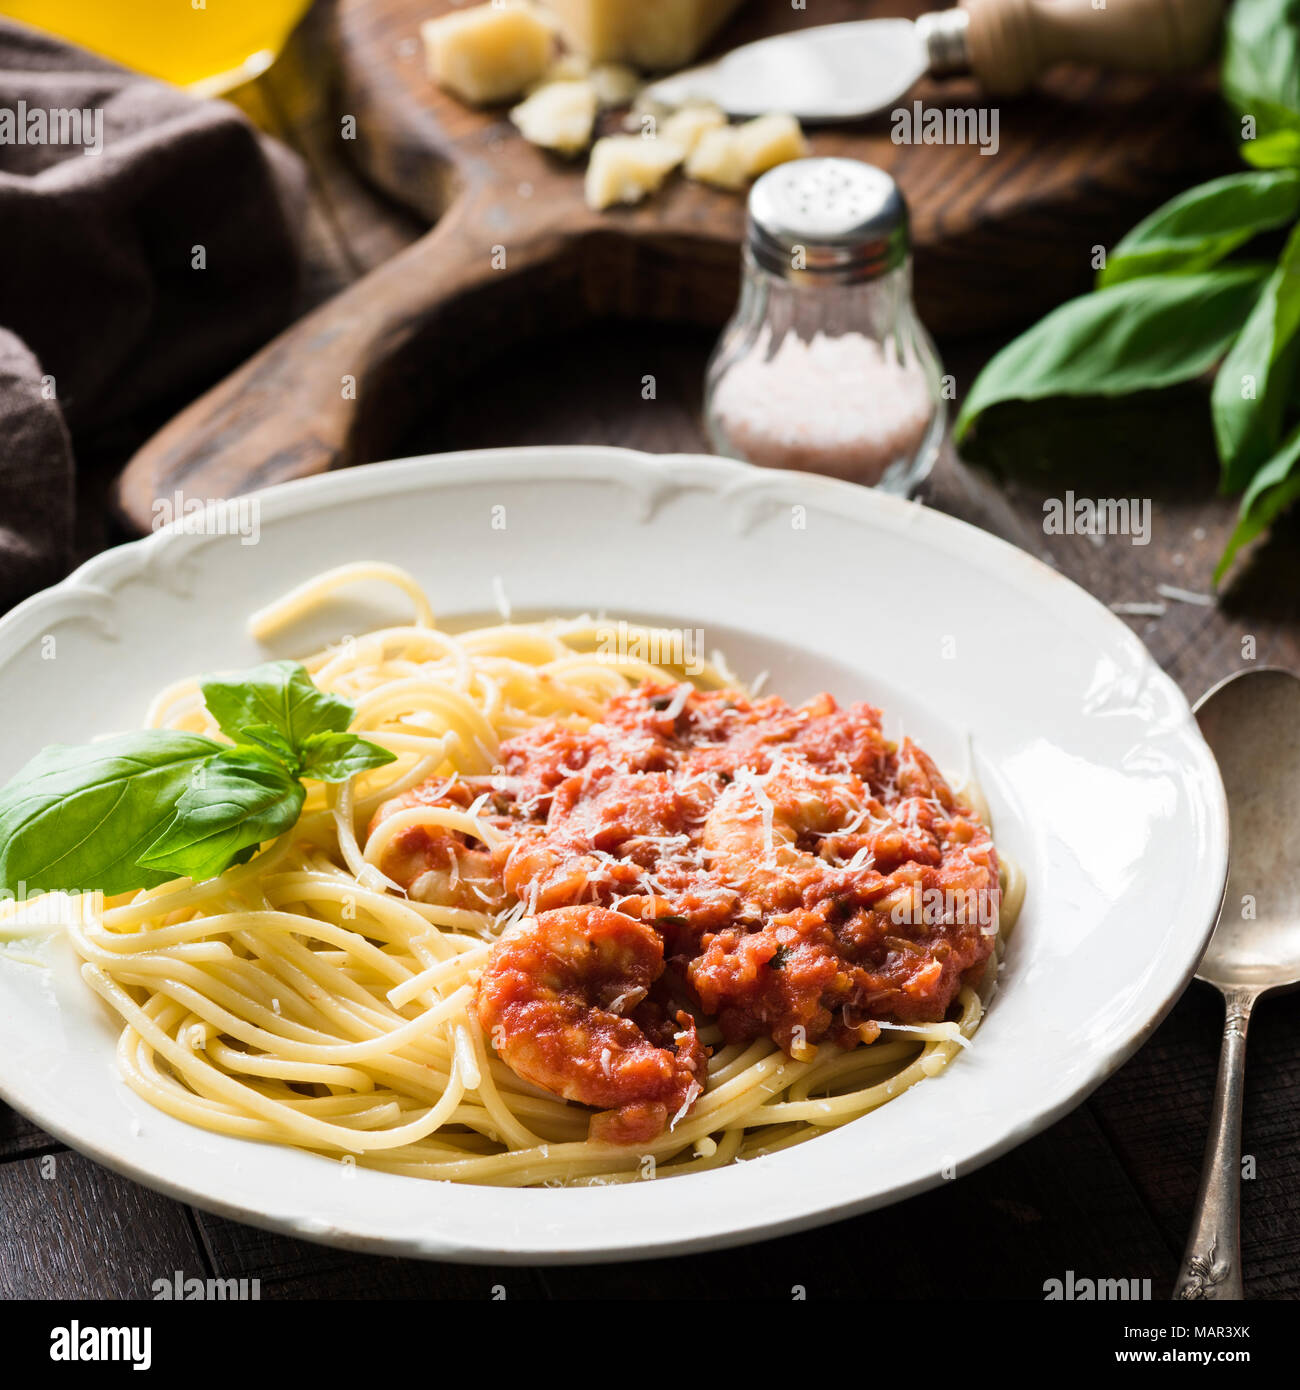 Italian pasta with tomato sauce and shrimps on white plate, cloeup view, square crop Stock Photo